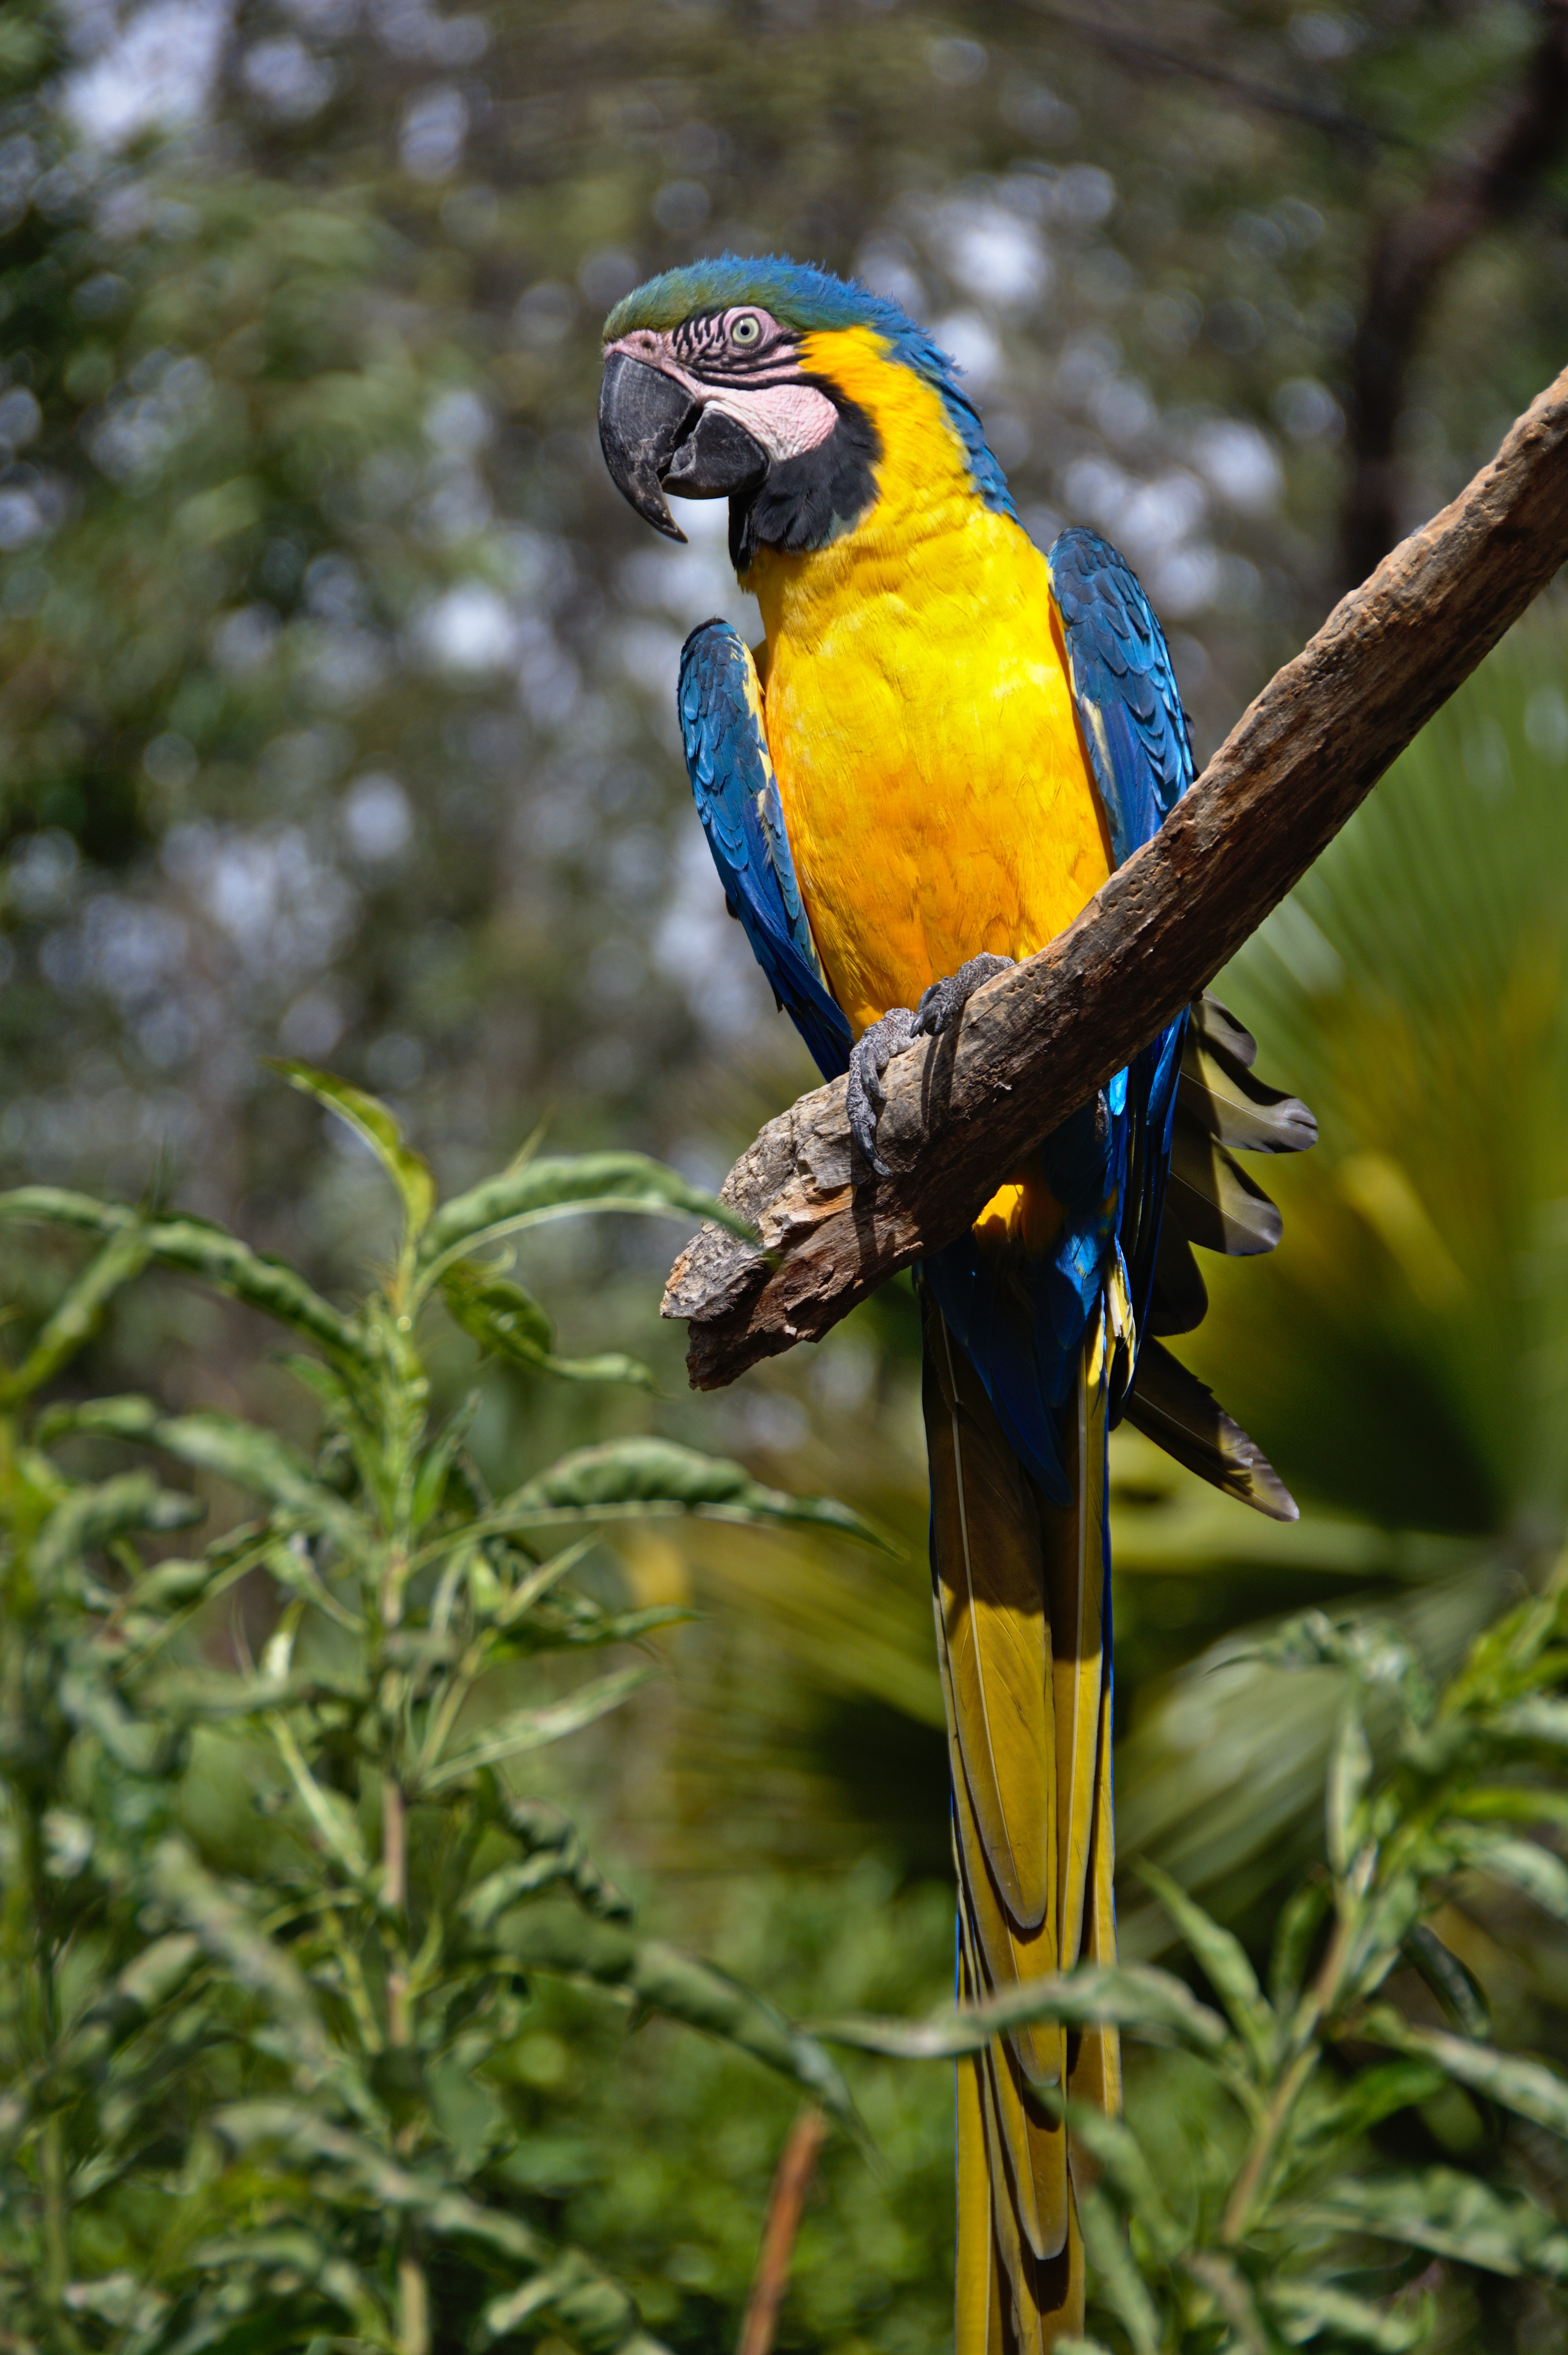 126013 download wallpaper Animals, Macaw, Parrots, Bird, Tail, Bright screensavers and pictures for free